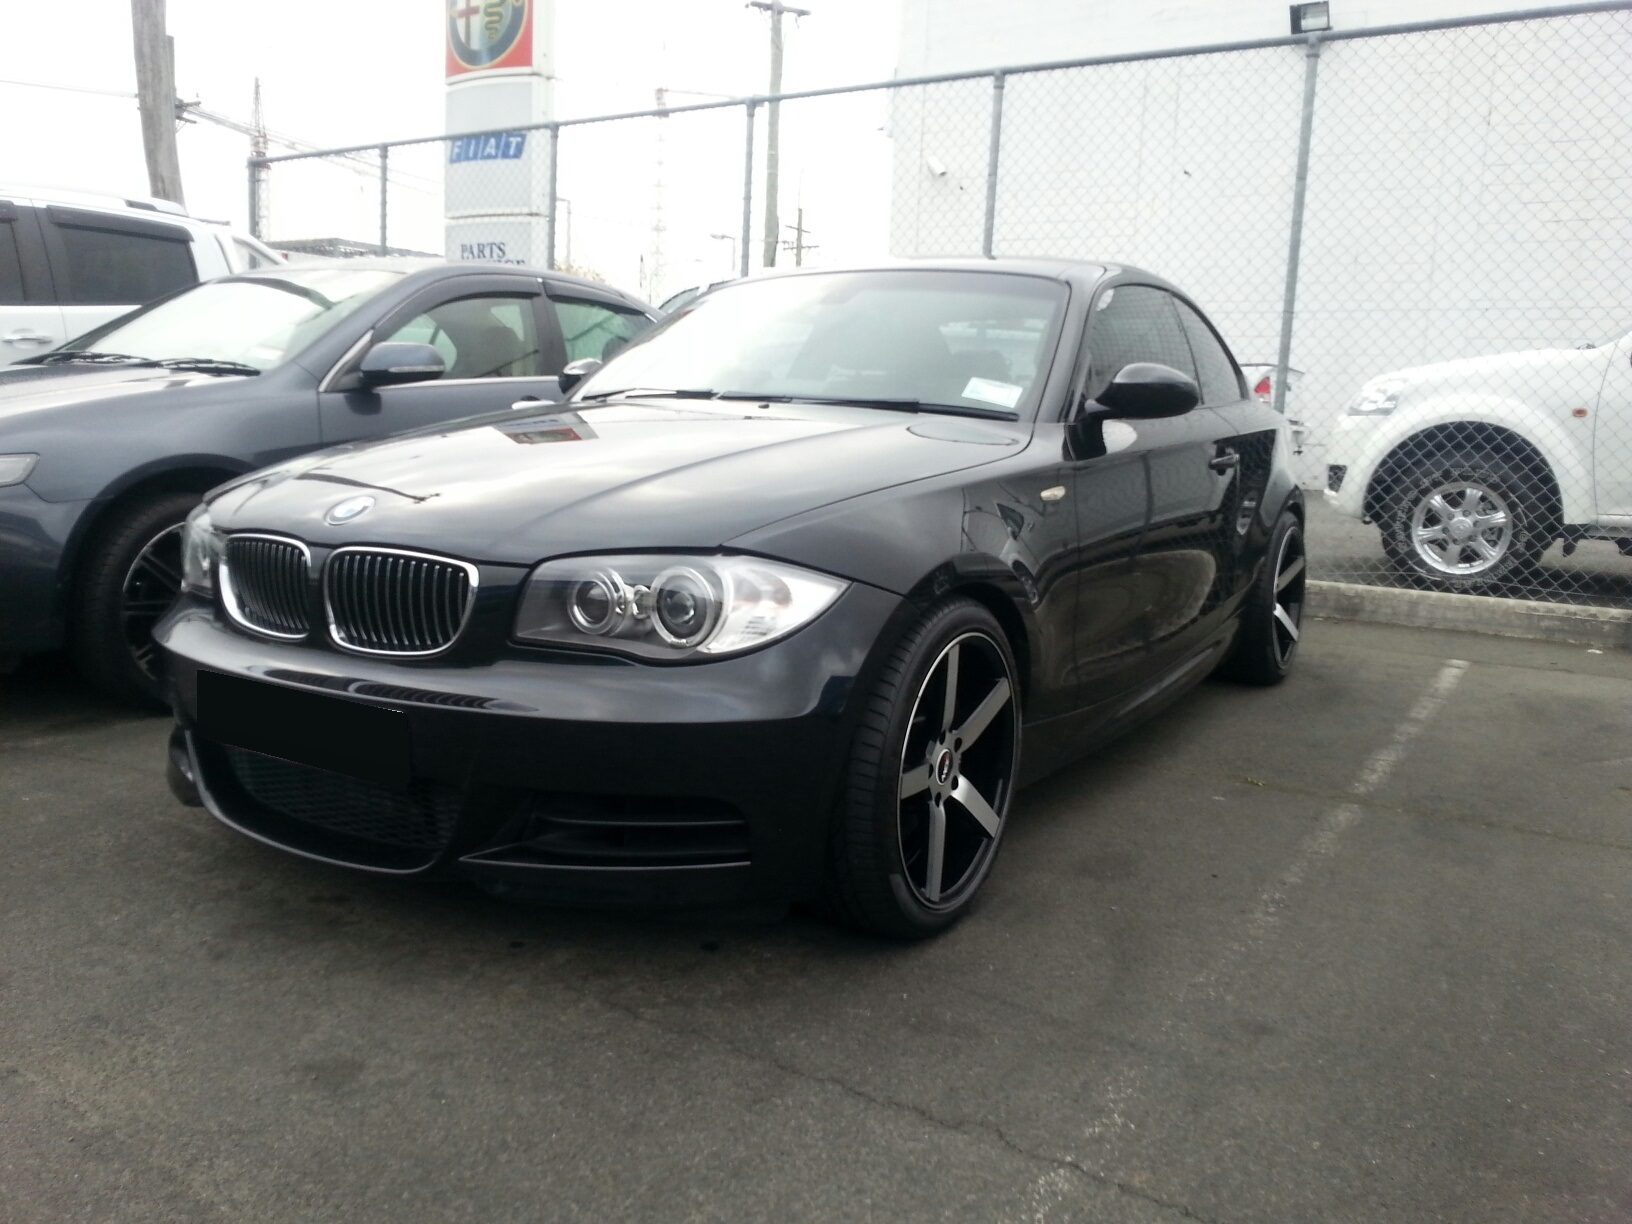 BMW 1series on BGW Torque